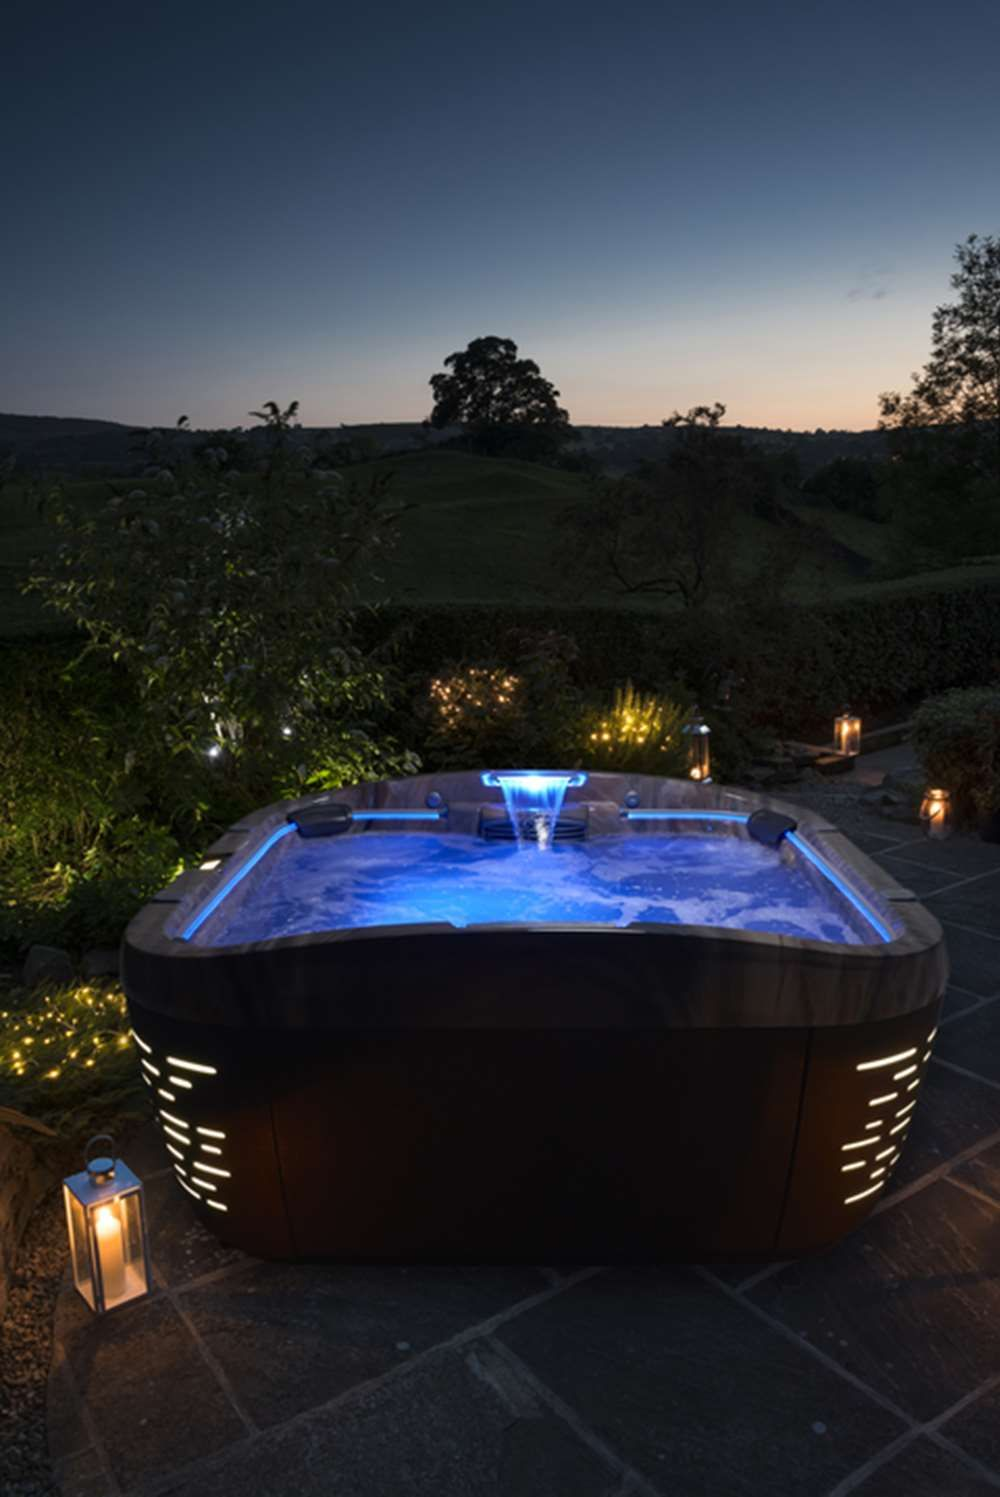 Hot Tub Lit Up At Night Jacuzzi Hot Tub Hot Tub Jacuzzi Outdoor